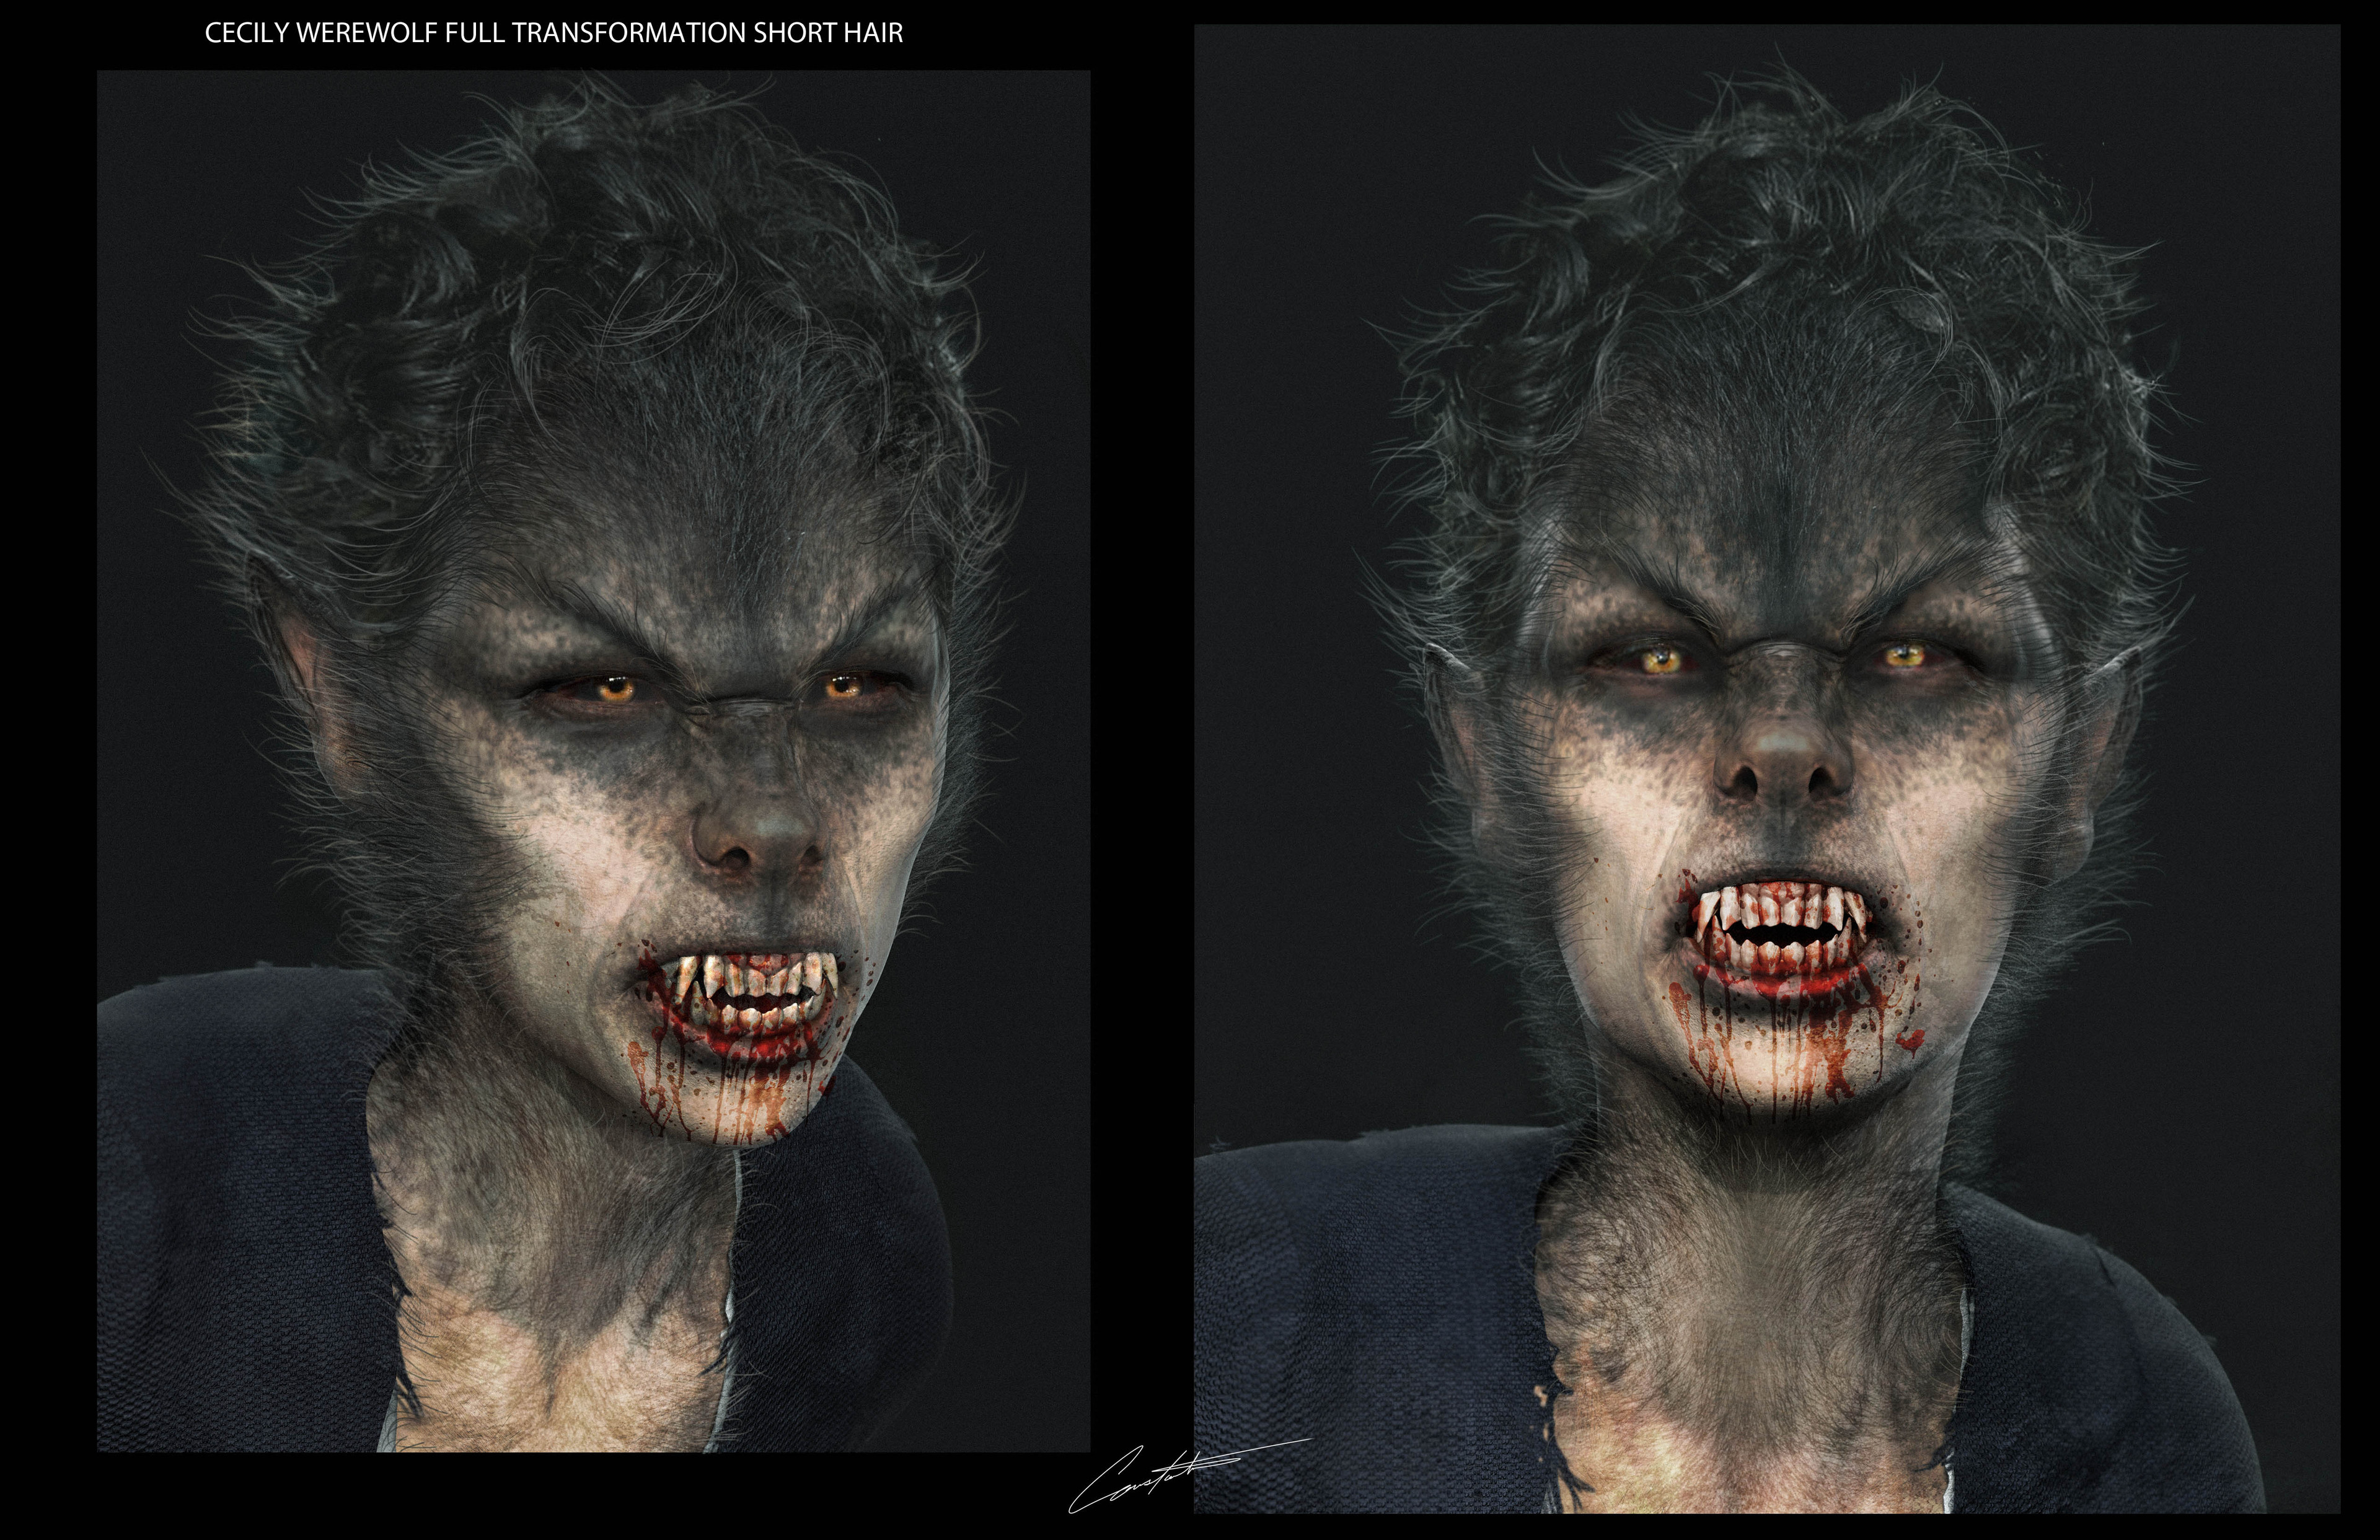 """Werewolves within """"Cecily makup design short hair"""""""